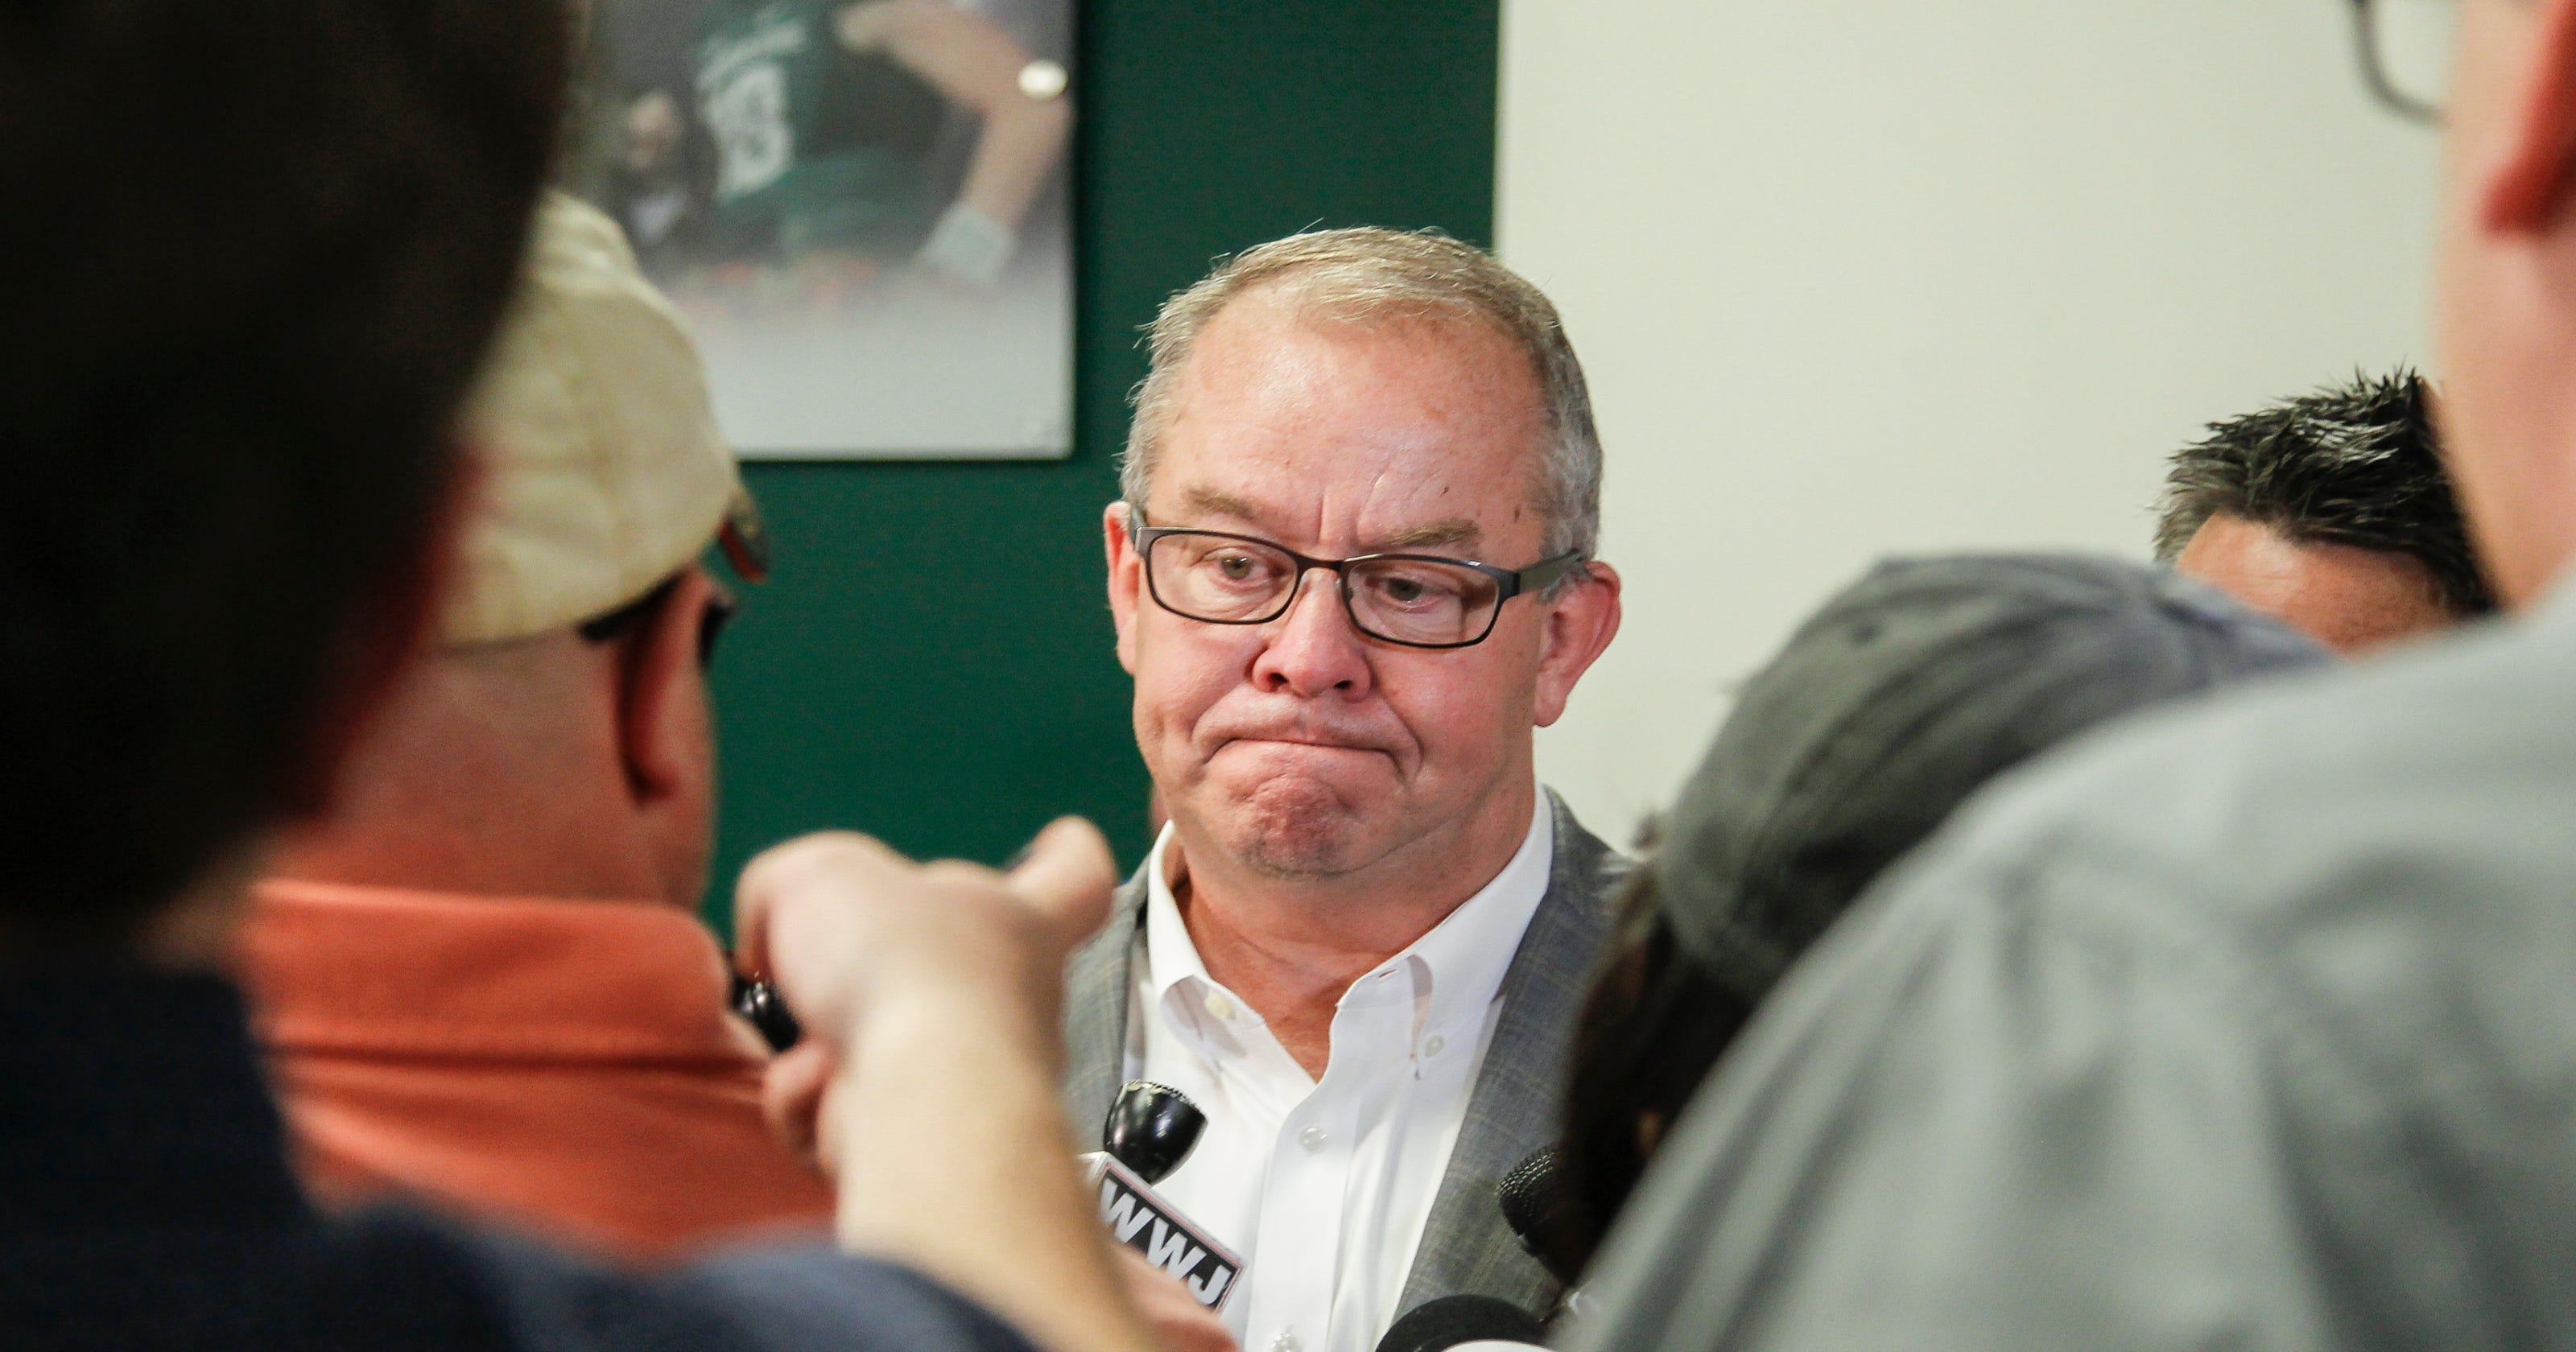 09dafb62aba Ex-Michigan State AD Mark Hollis slams ESPN report in staff email